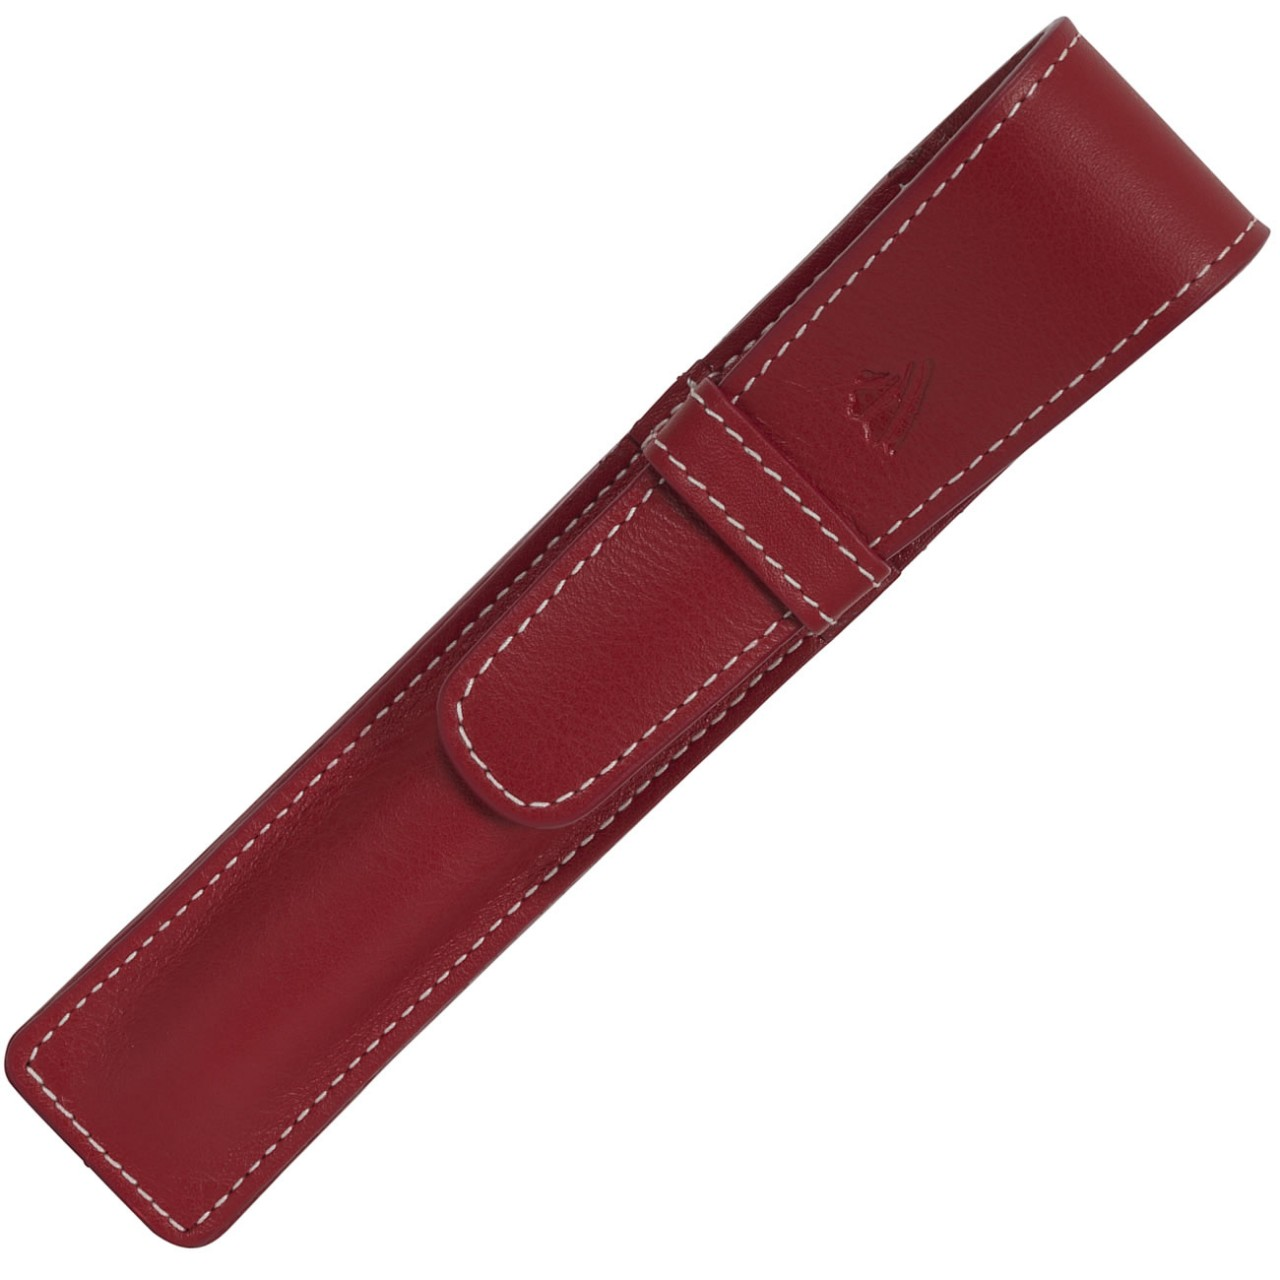 LARGE SOFT PEN POUCH WITH FLAP * RIVIERA RED